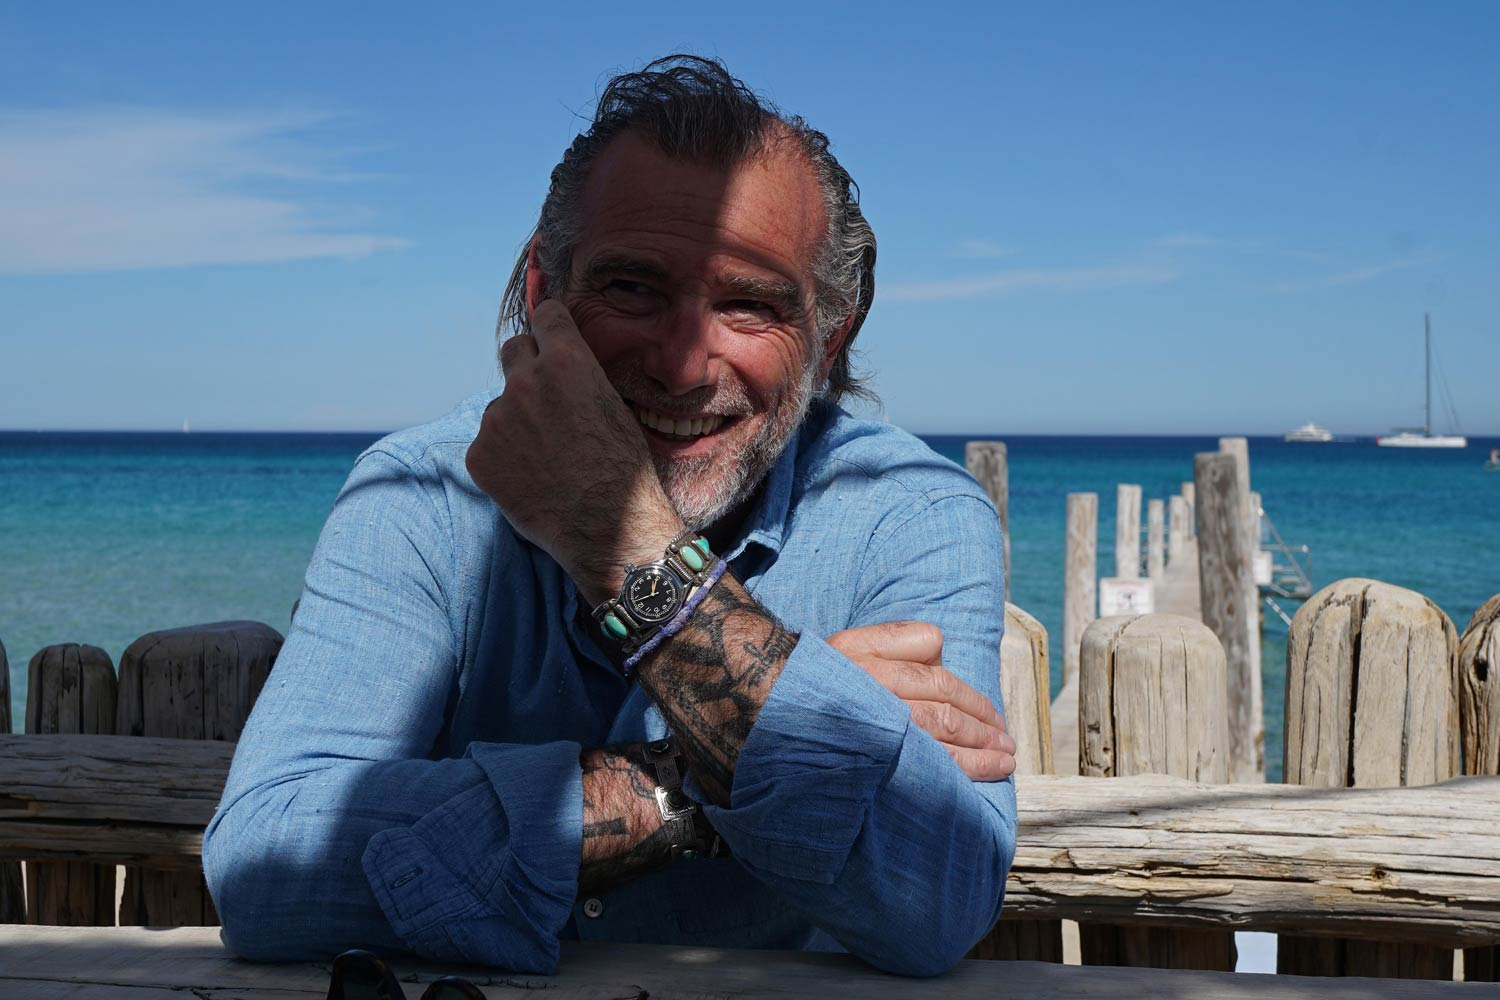 Alessandro Squarzi at Club 55, St. Tropez, wearing a military Elgin wristwatch, 1945, with silver and turquoise Navajo bangle. Vintage chambray shirt